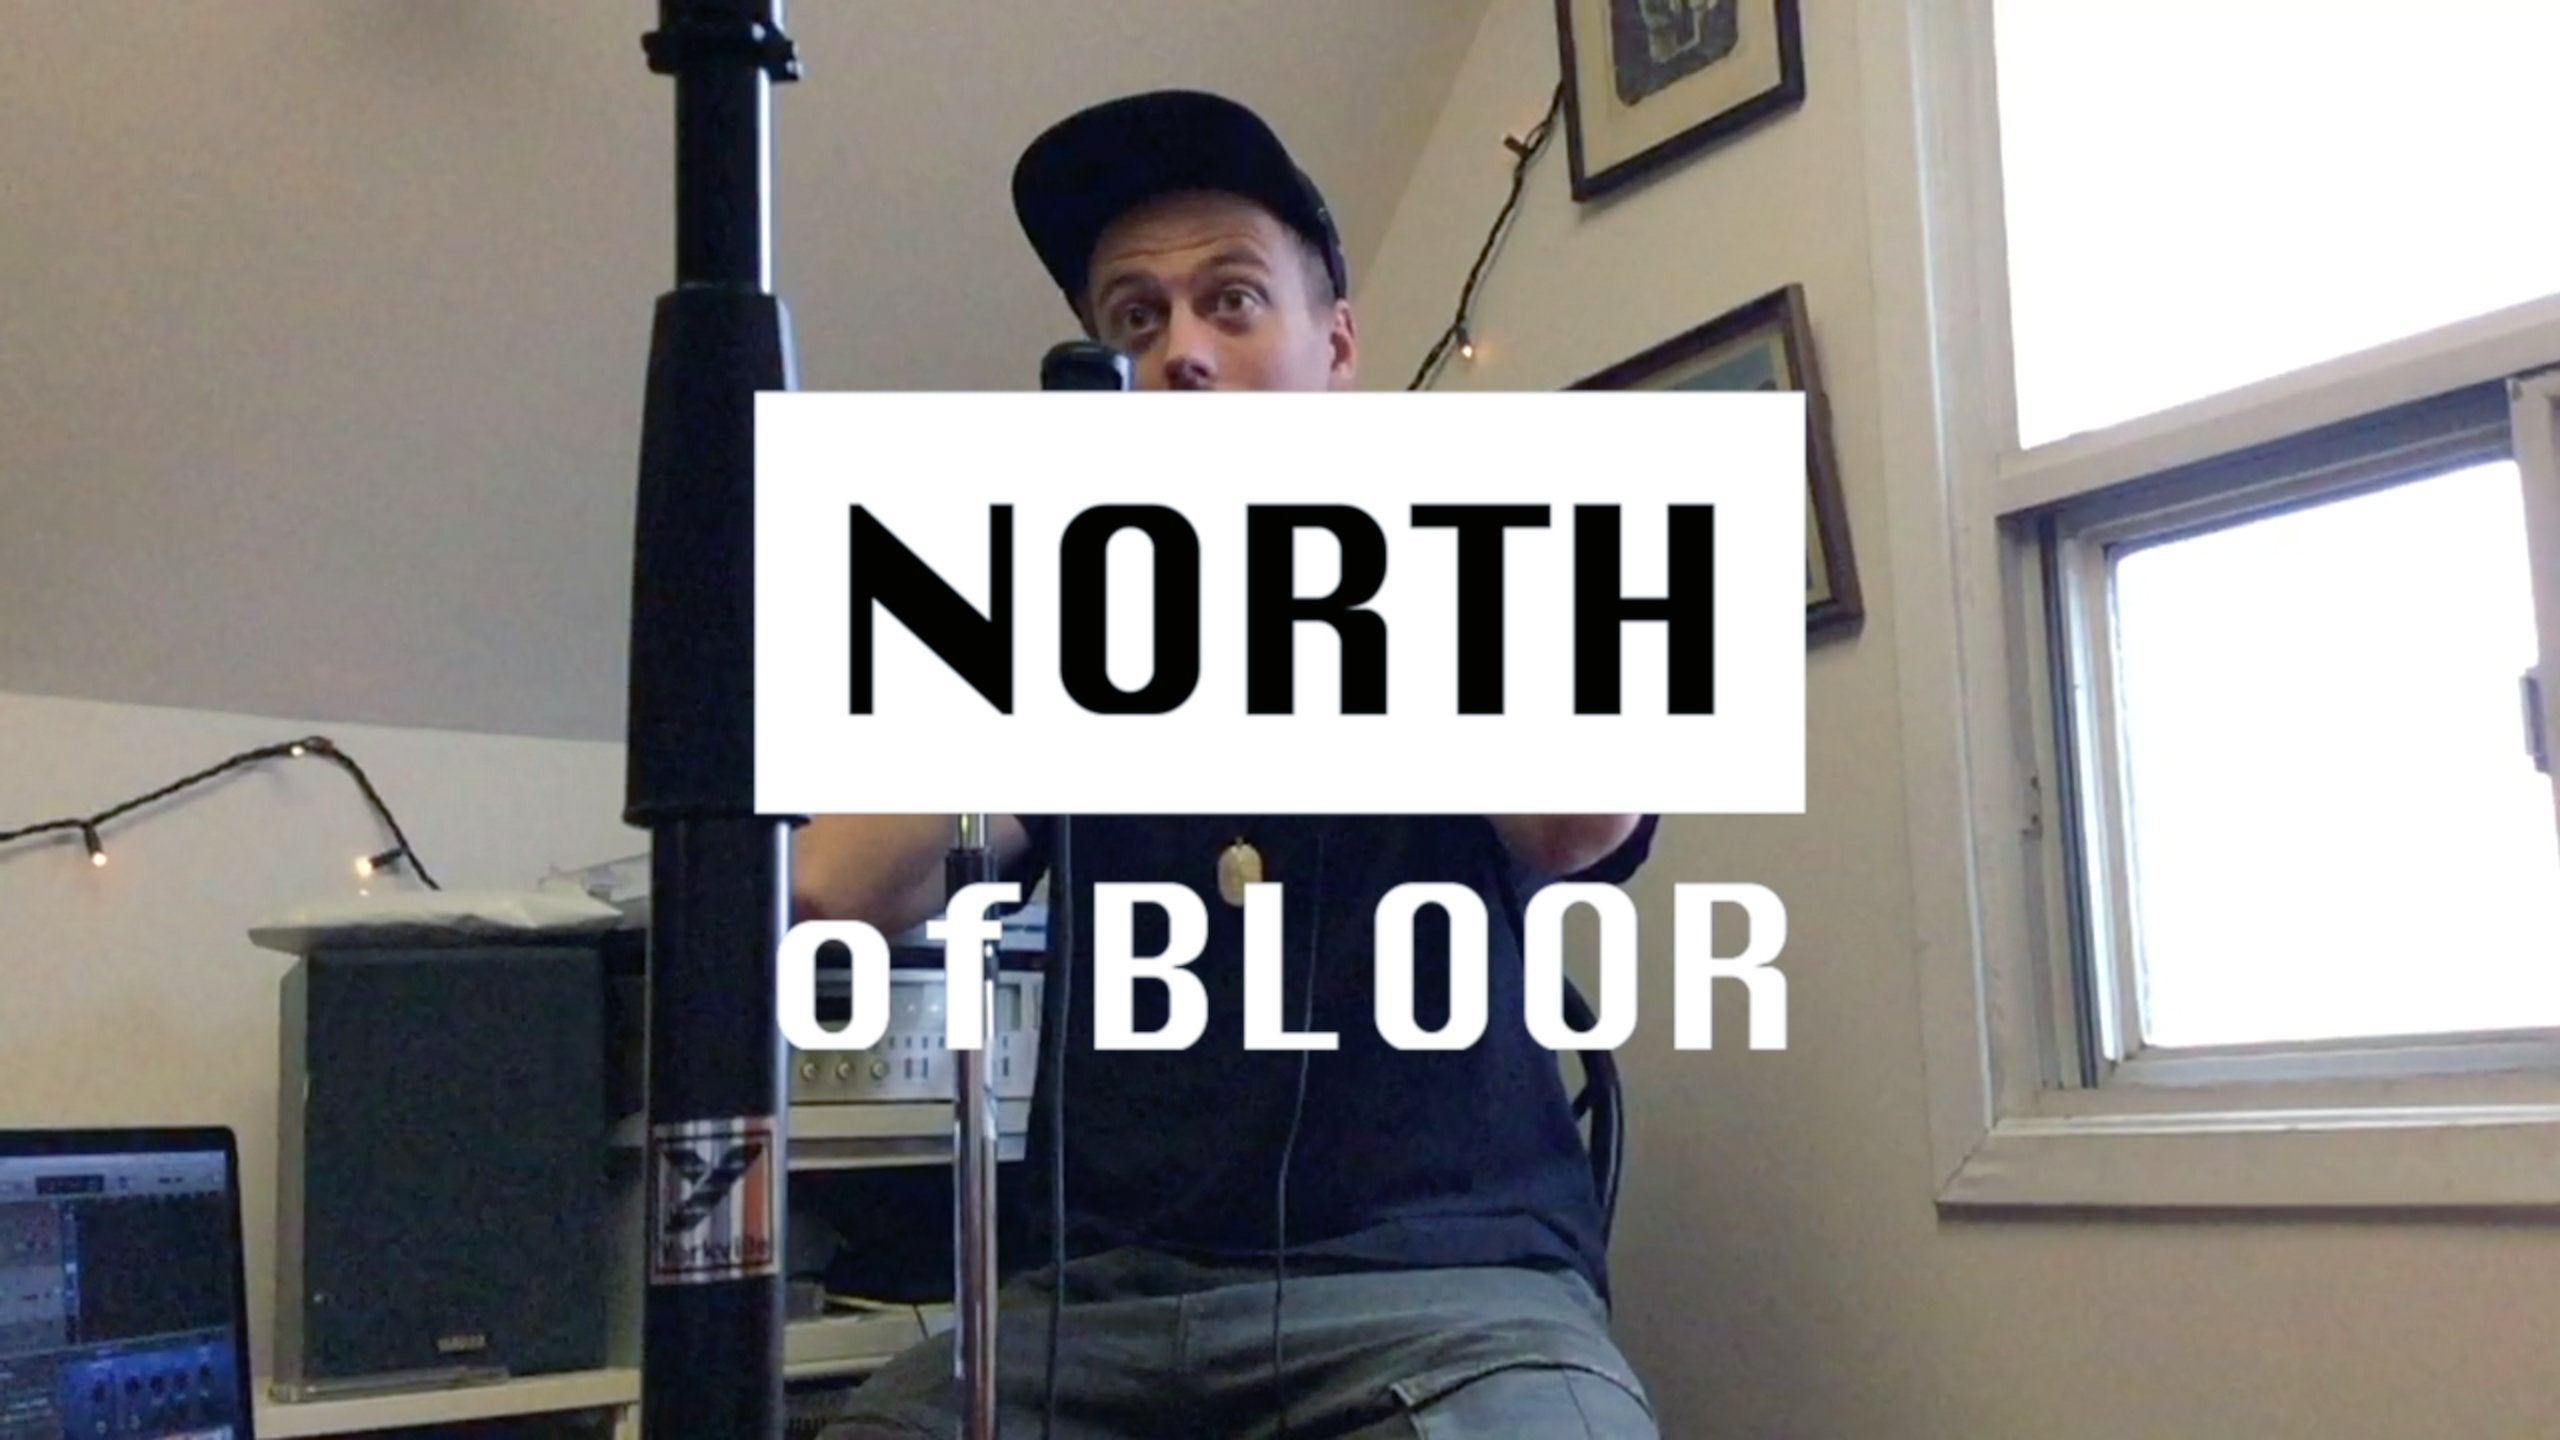 North of Bloor Podcast Interview